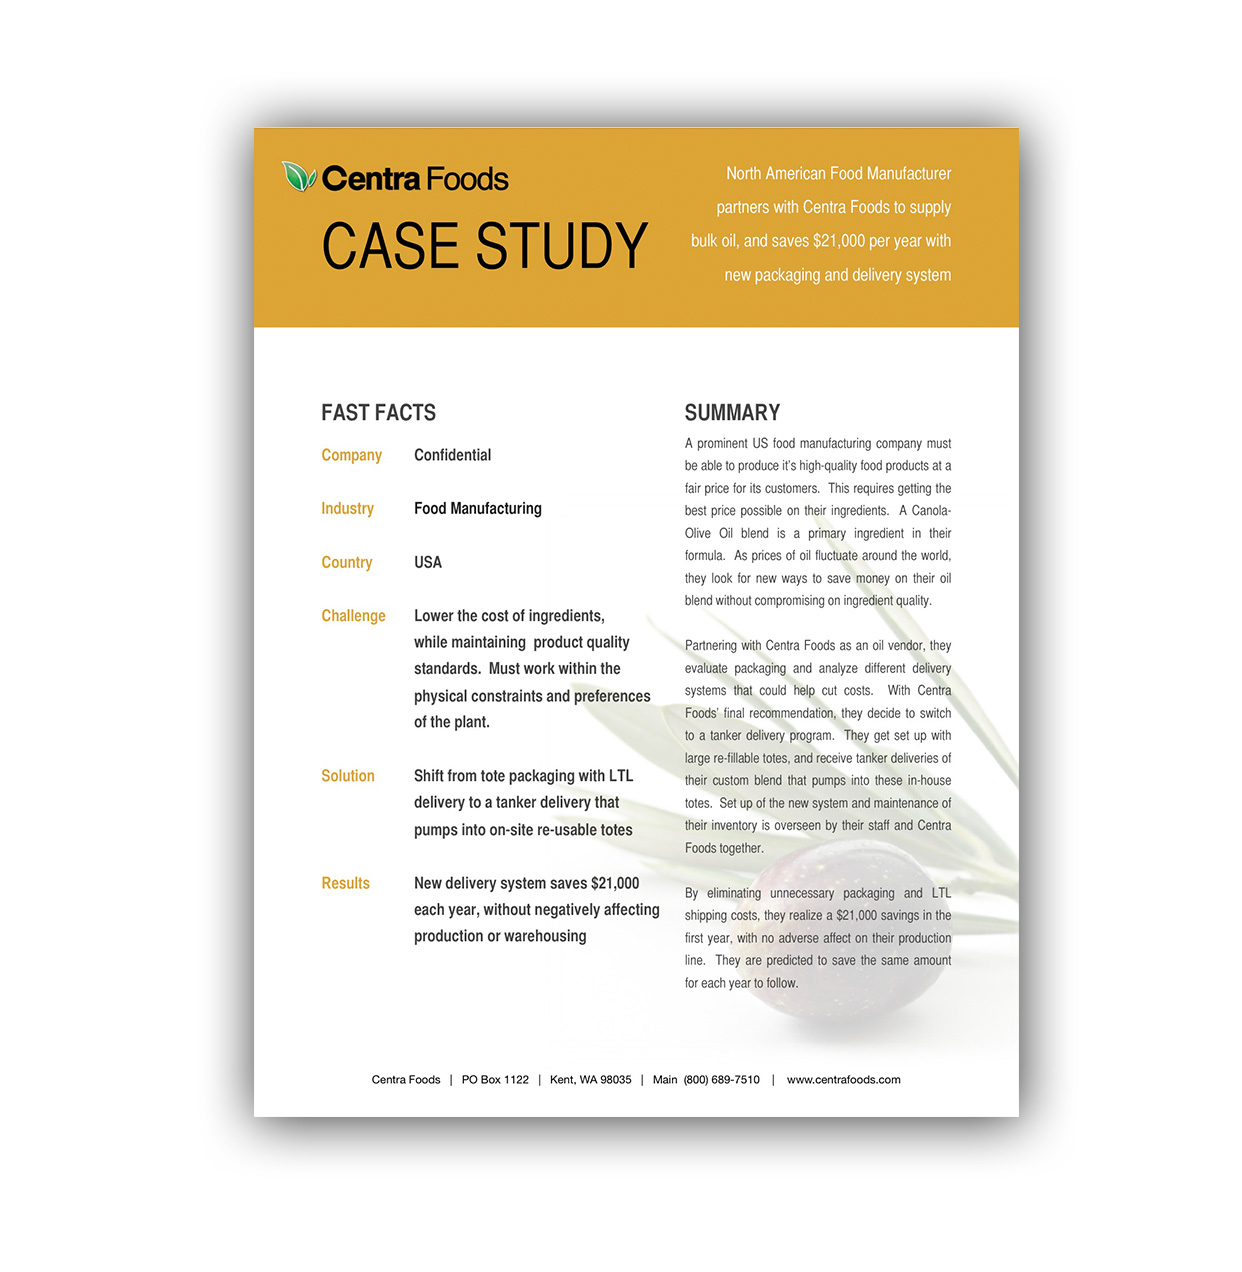 Download Case Study: Tankers Delivering Into Totes